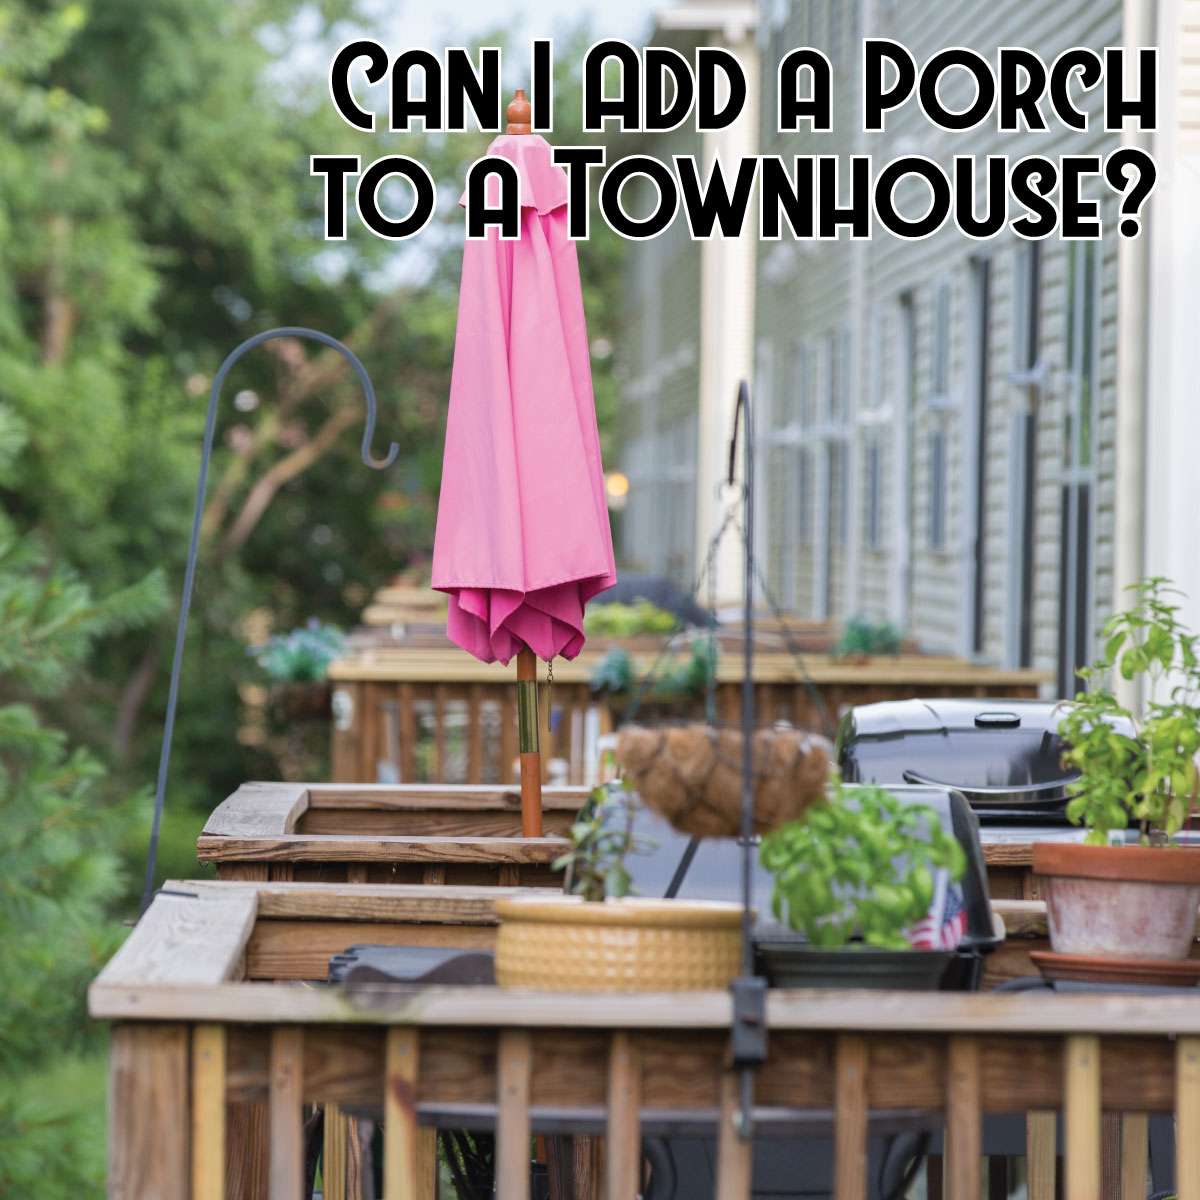 Add a Porch to a Townhouse